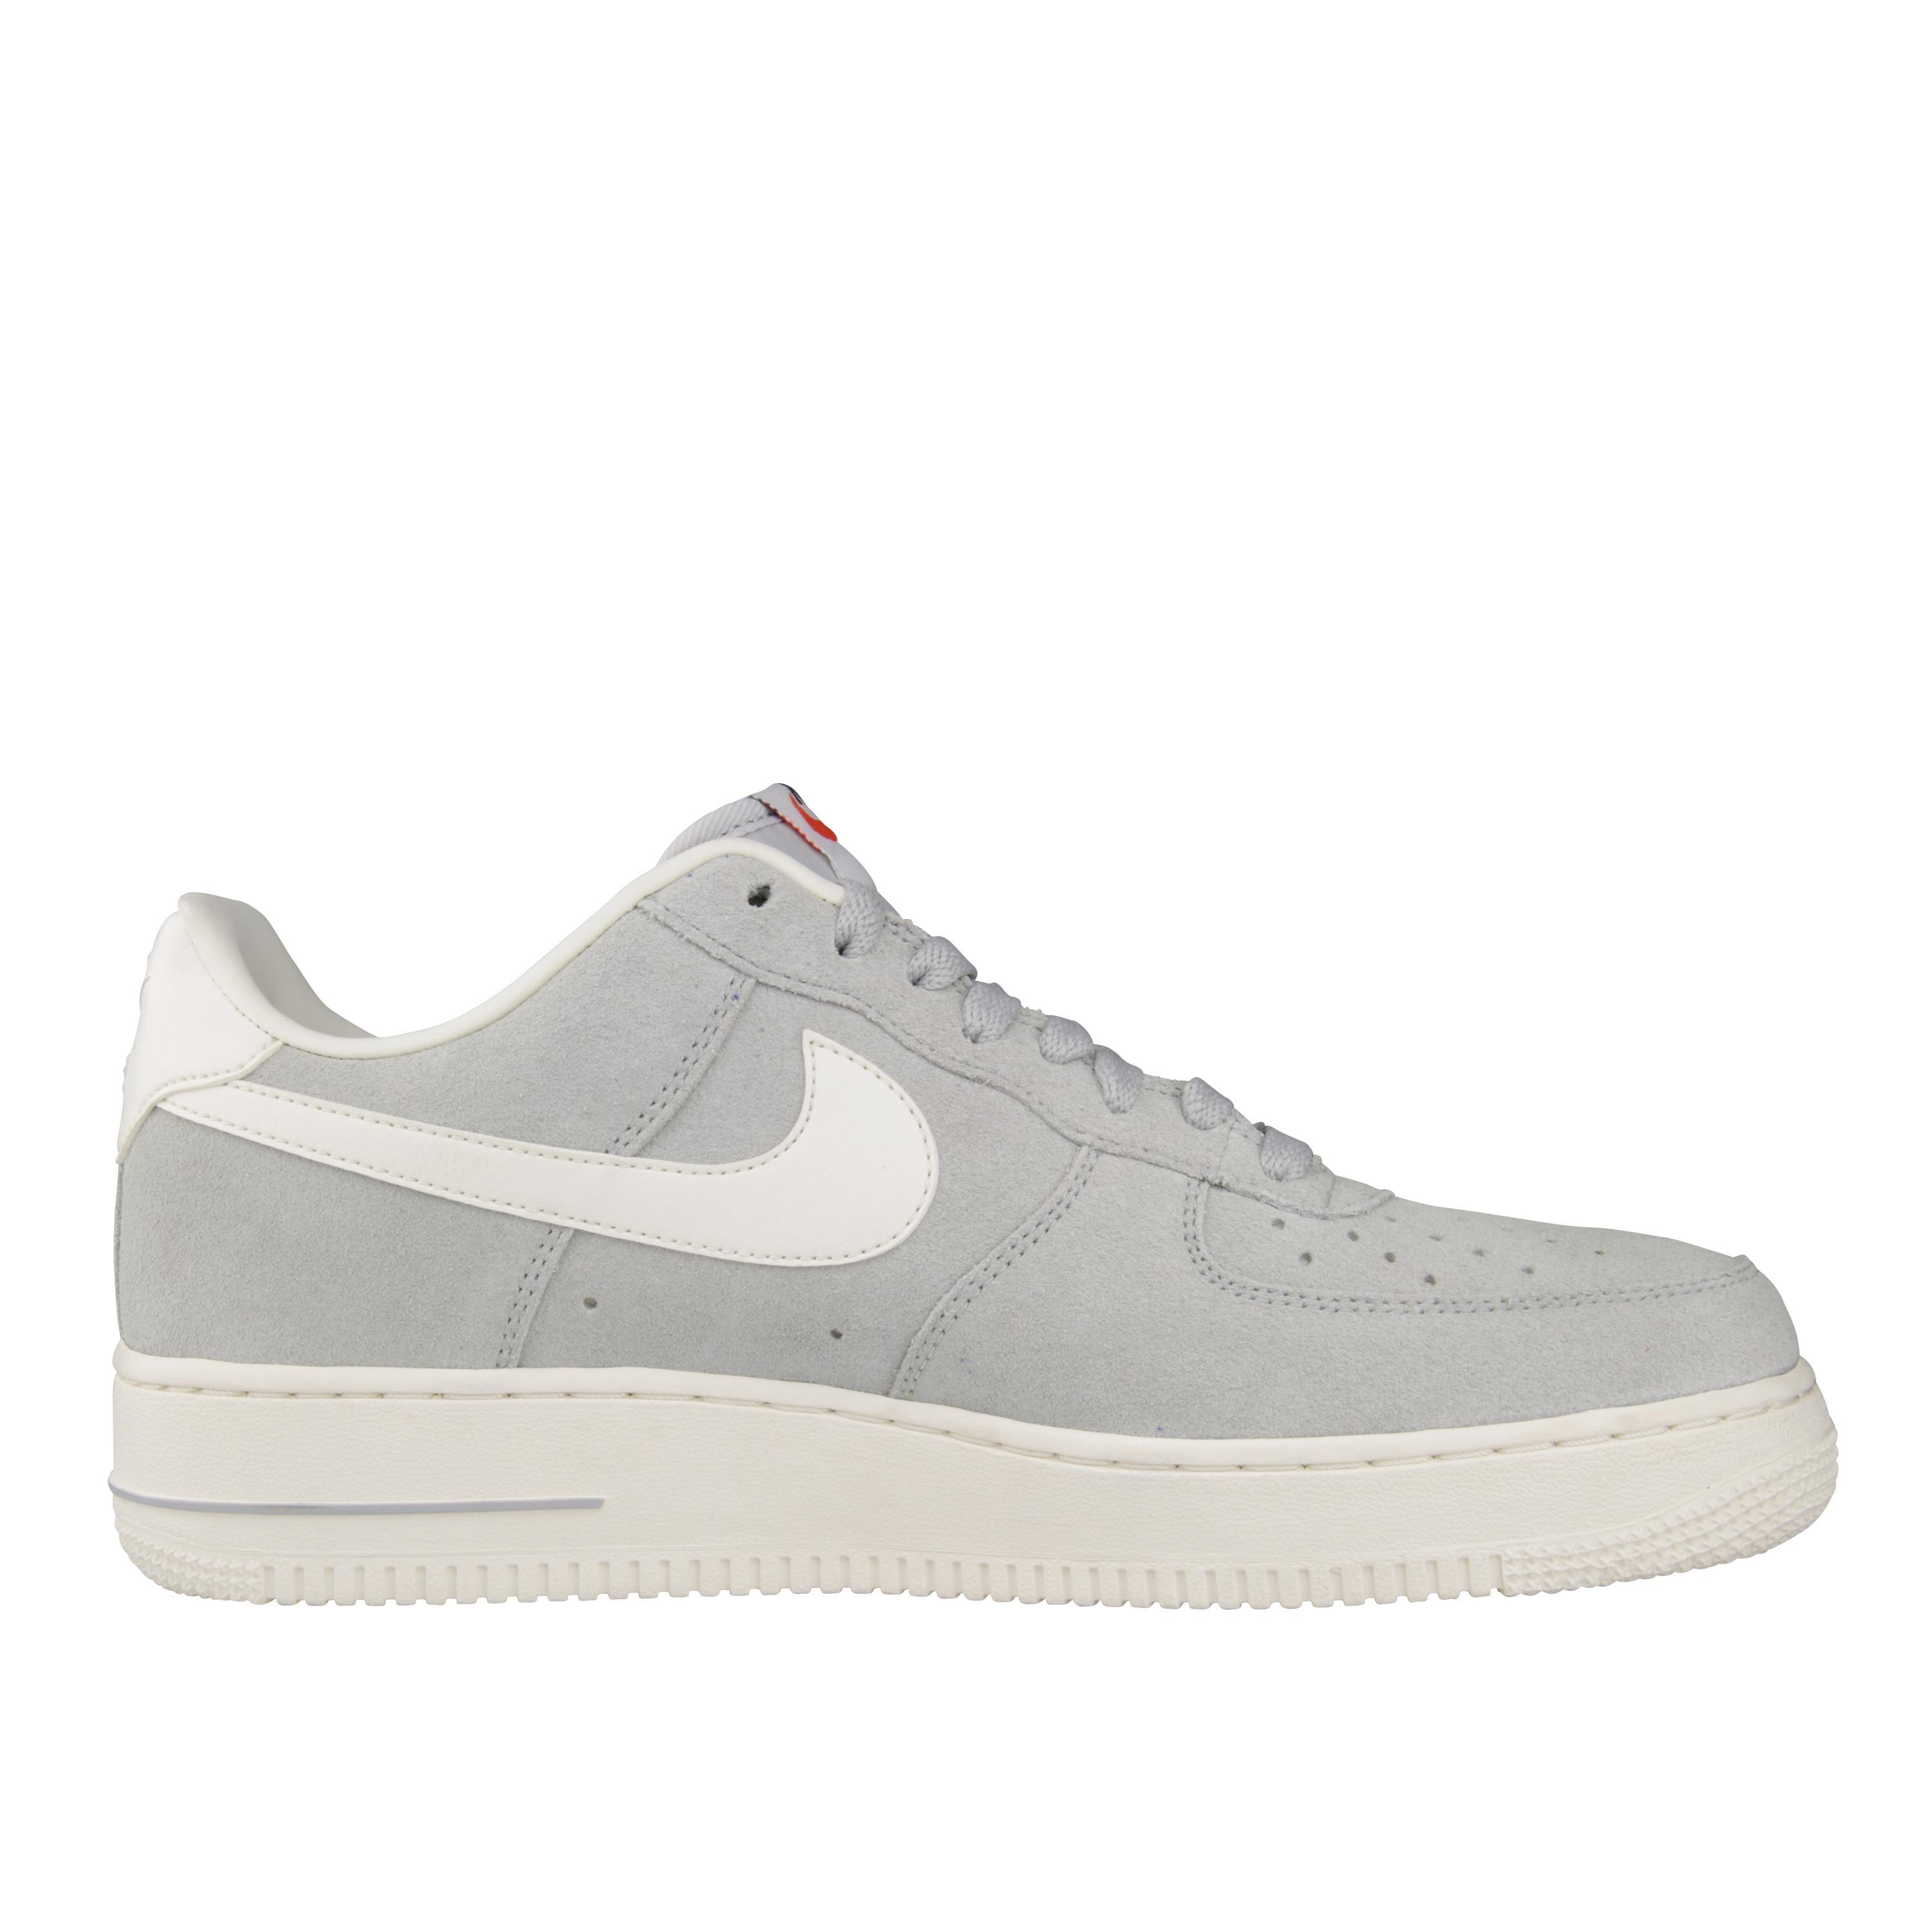 chaussures de séparation f4bc7 6b308 nike air force one blanche basse